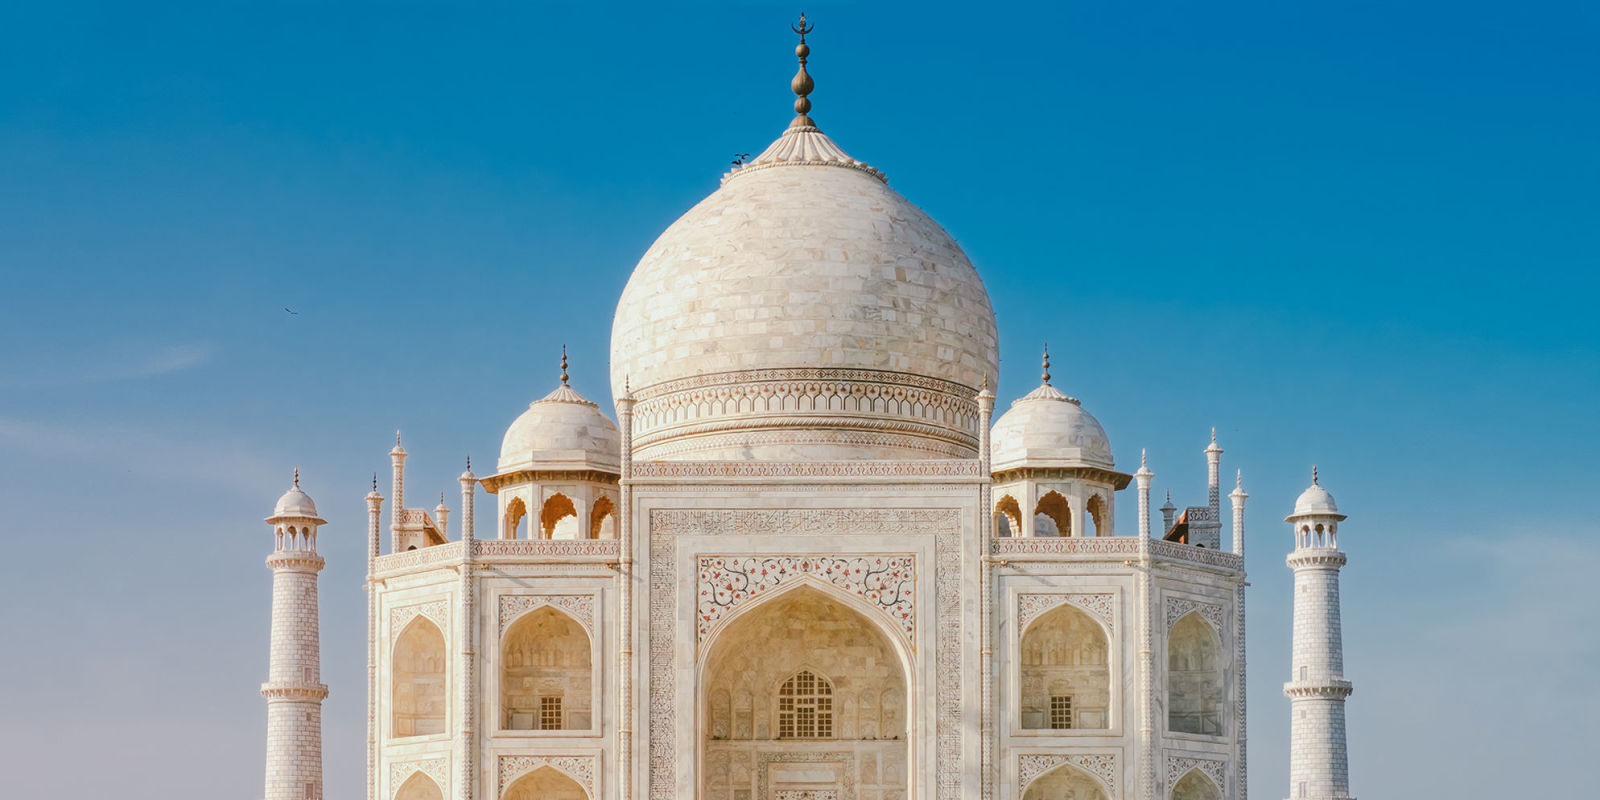 Best New 7 Wonders Of The World In